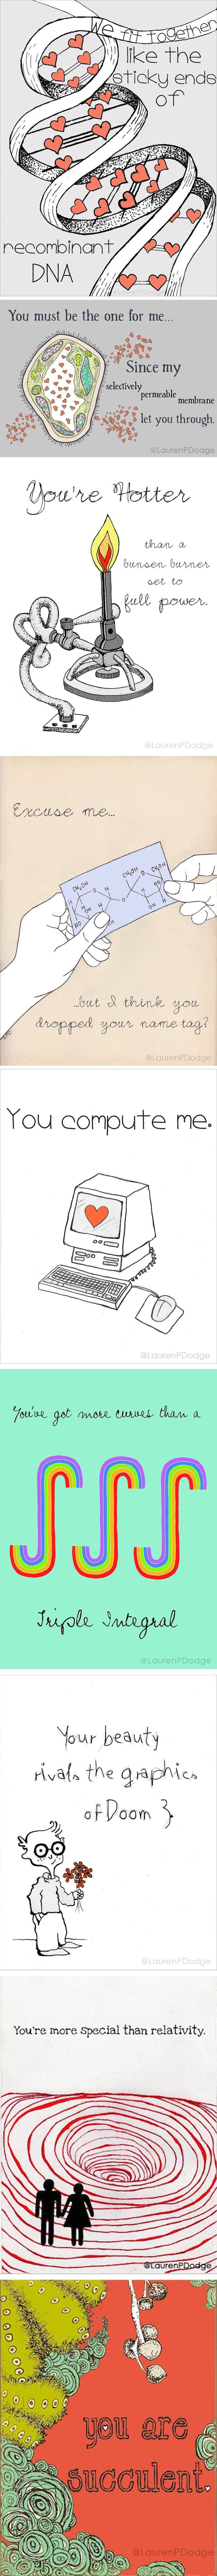 Nerd Alert! Free Valentine Print-Outs for the Casual Geek #freevalentine #nerdy #design